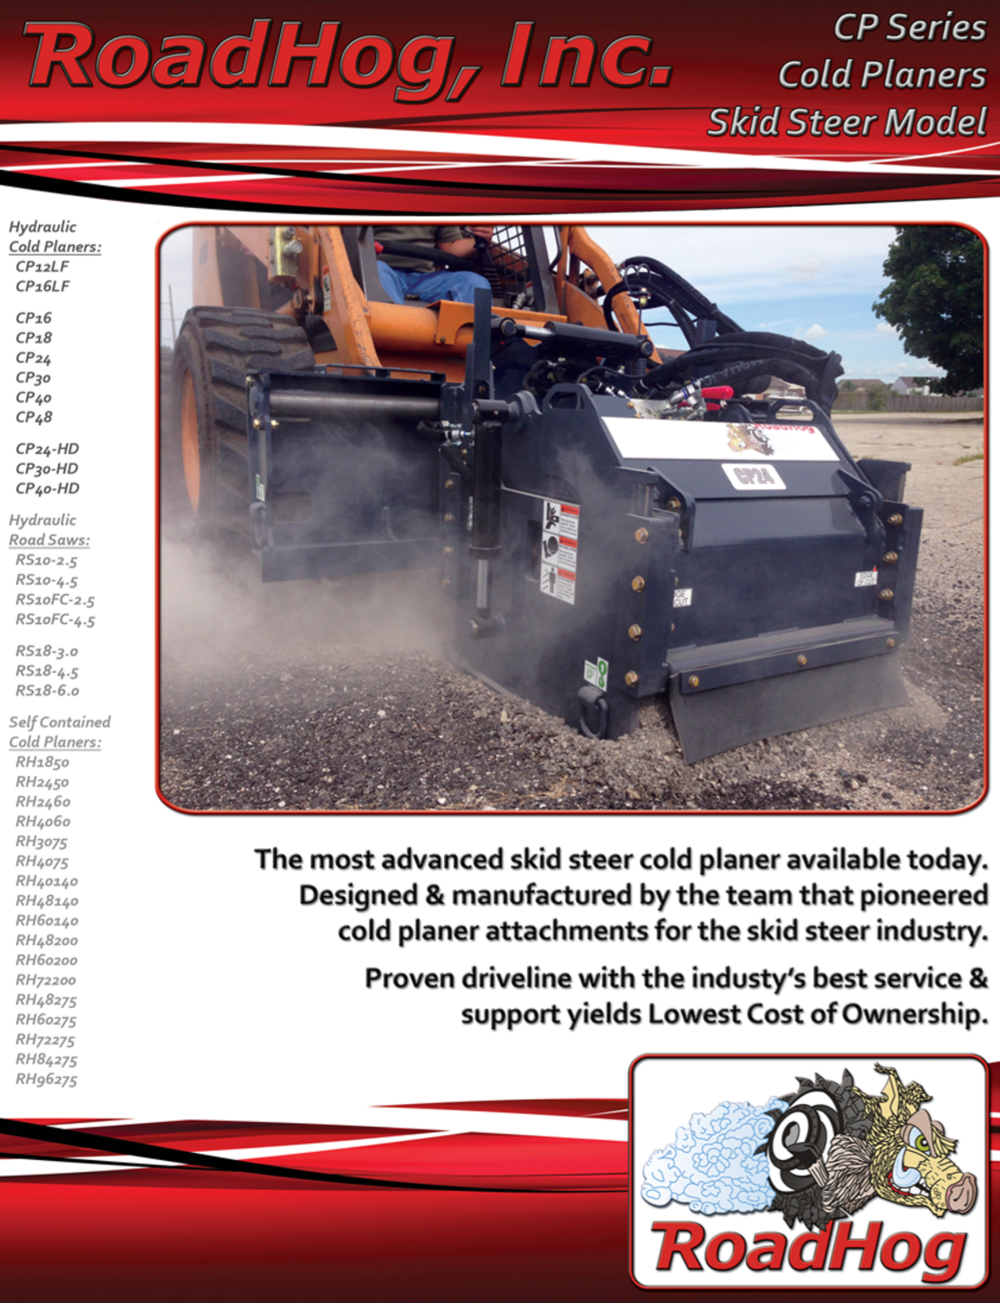 Skid Steer Cold Planer Brochure